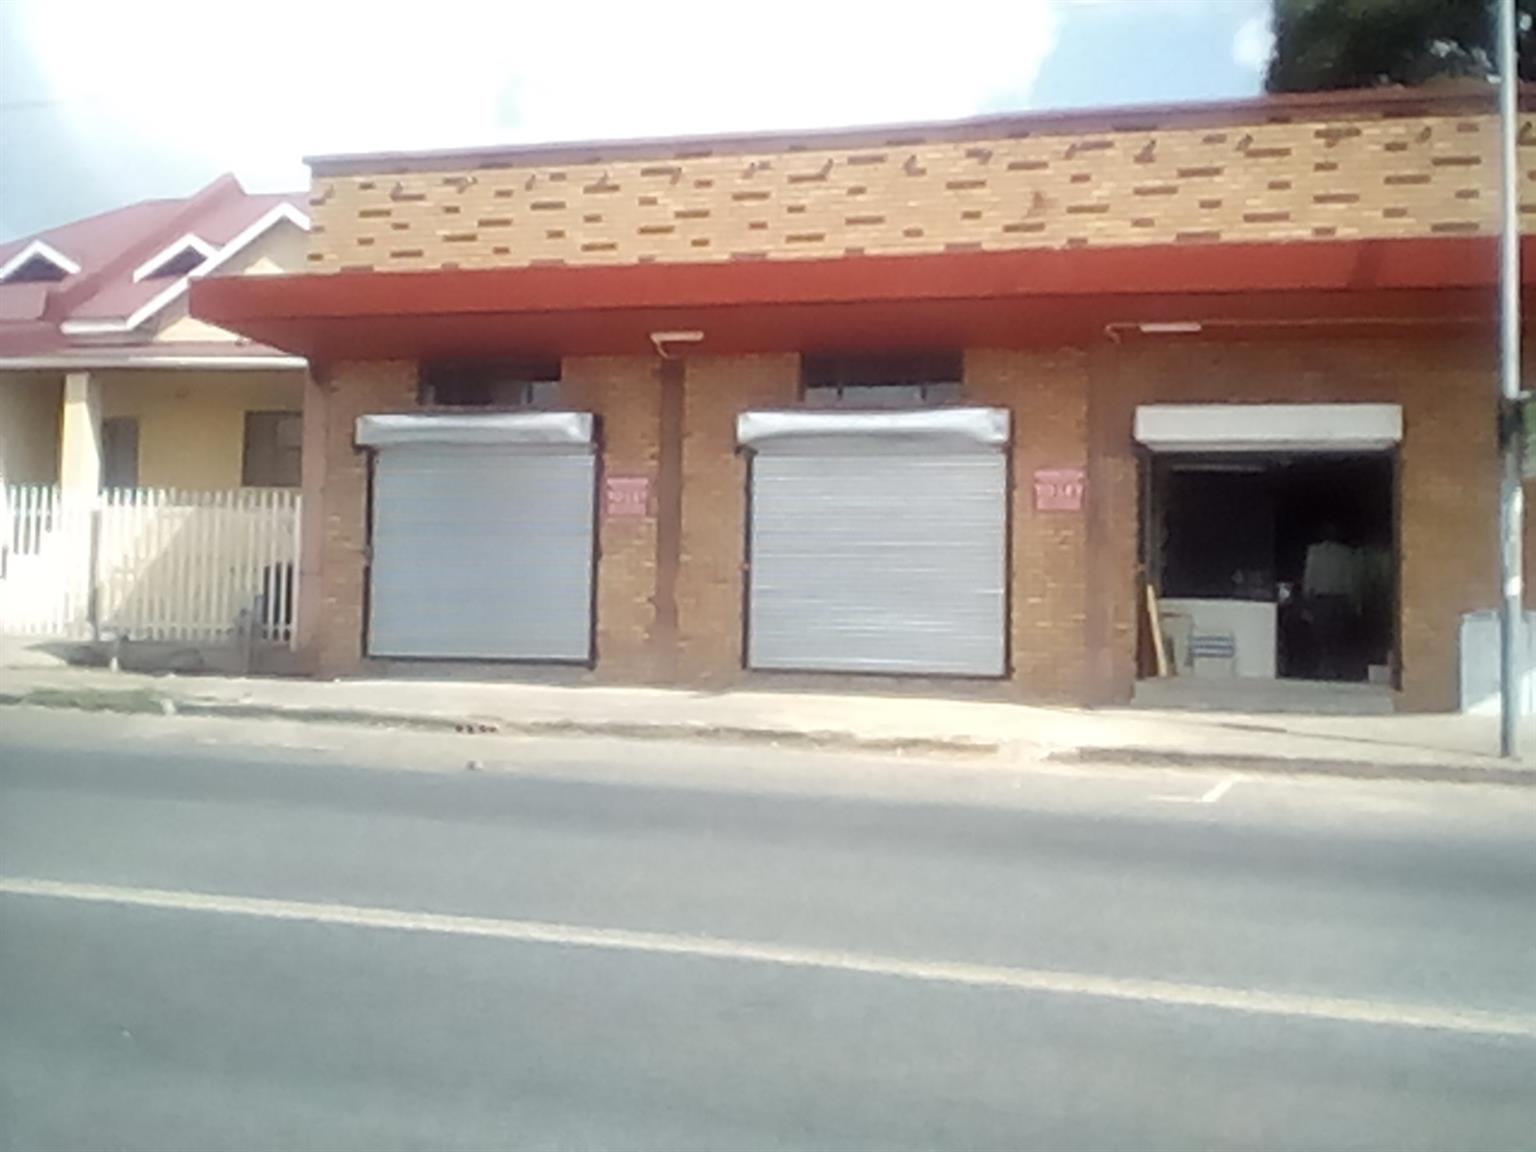 Krugersdorp. Retail space to let in main road. Suitablefor Bottle store, Pawn shop etc.